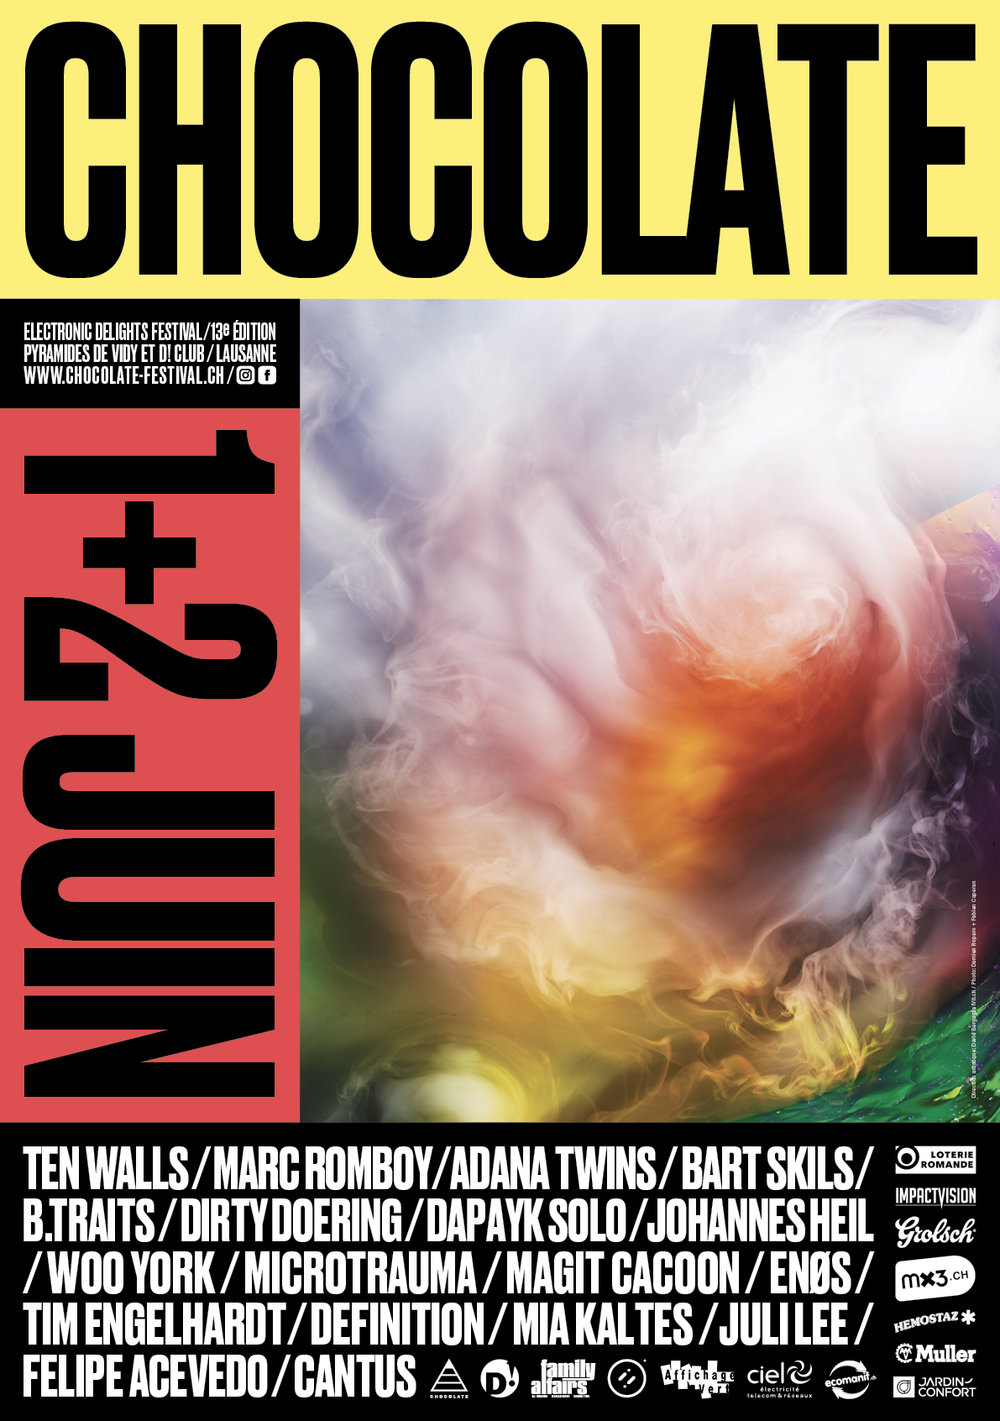 CHOCOLATE 2018 - 1-2 juinTen Walls - Live! (LT), Marc Romboy (DE), Adana Twins (DE), Bart Skils (NL), B.Traits (UK / CA), Dirty Doering (DE), Dapayk Solo - Live! (DE), Johannes Heil - Live! (DE), Woo York - Live (UA), Microtrauma - Live! (DE), Magit Cacoon (DE / IL), Tim Engelhardt - Live! (DE), Definition (CH), Mia Kaltes (CH), Juli Lee (CH), Enøs (CH), Felipe Acevedo (VH), Cantus (VH).After-party : D! ClubAffluence : 5'000 personnes